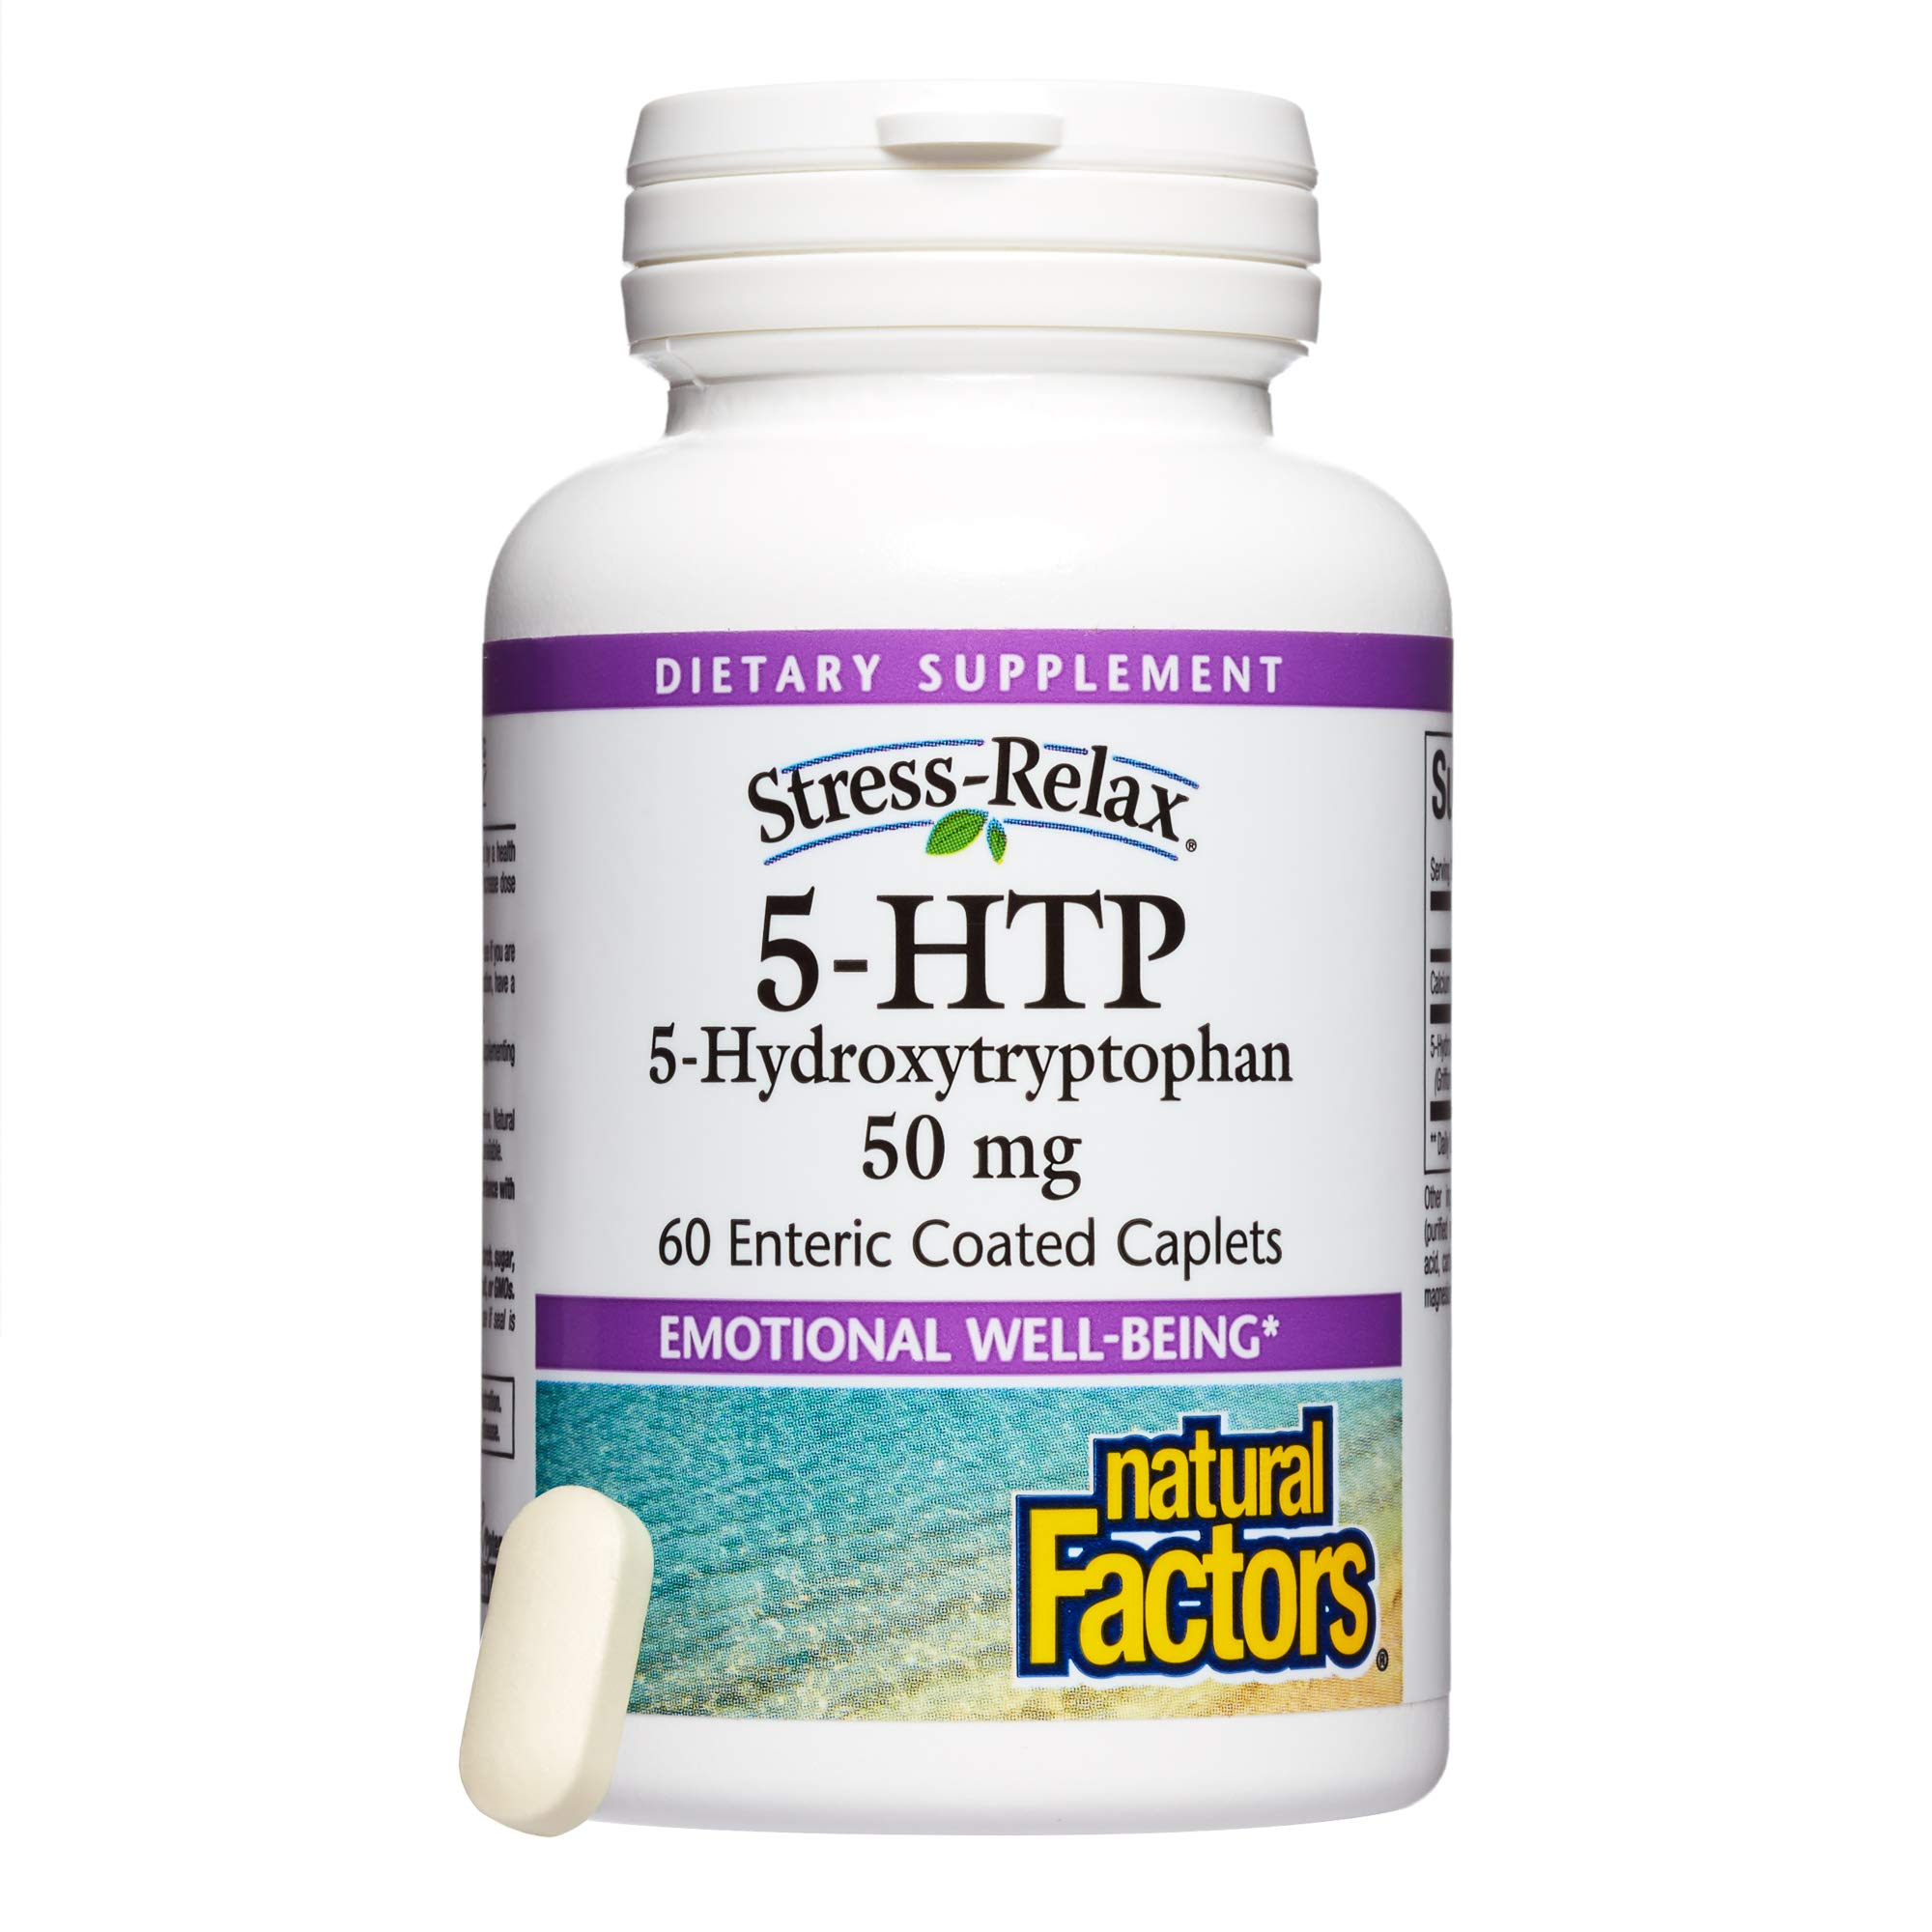 Natural Factors - Stress-Relax 5-HTP 50mg, Supports Emotional Well-Being, 60 Enteric Coated Caplets